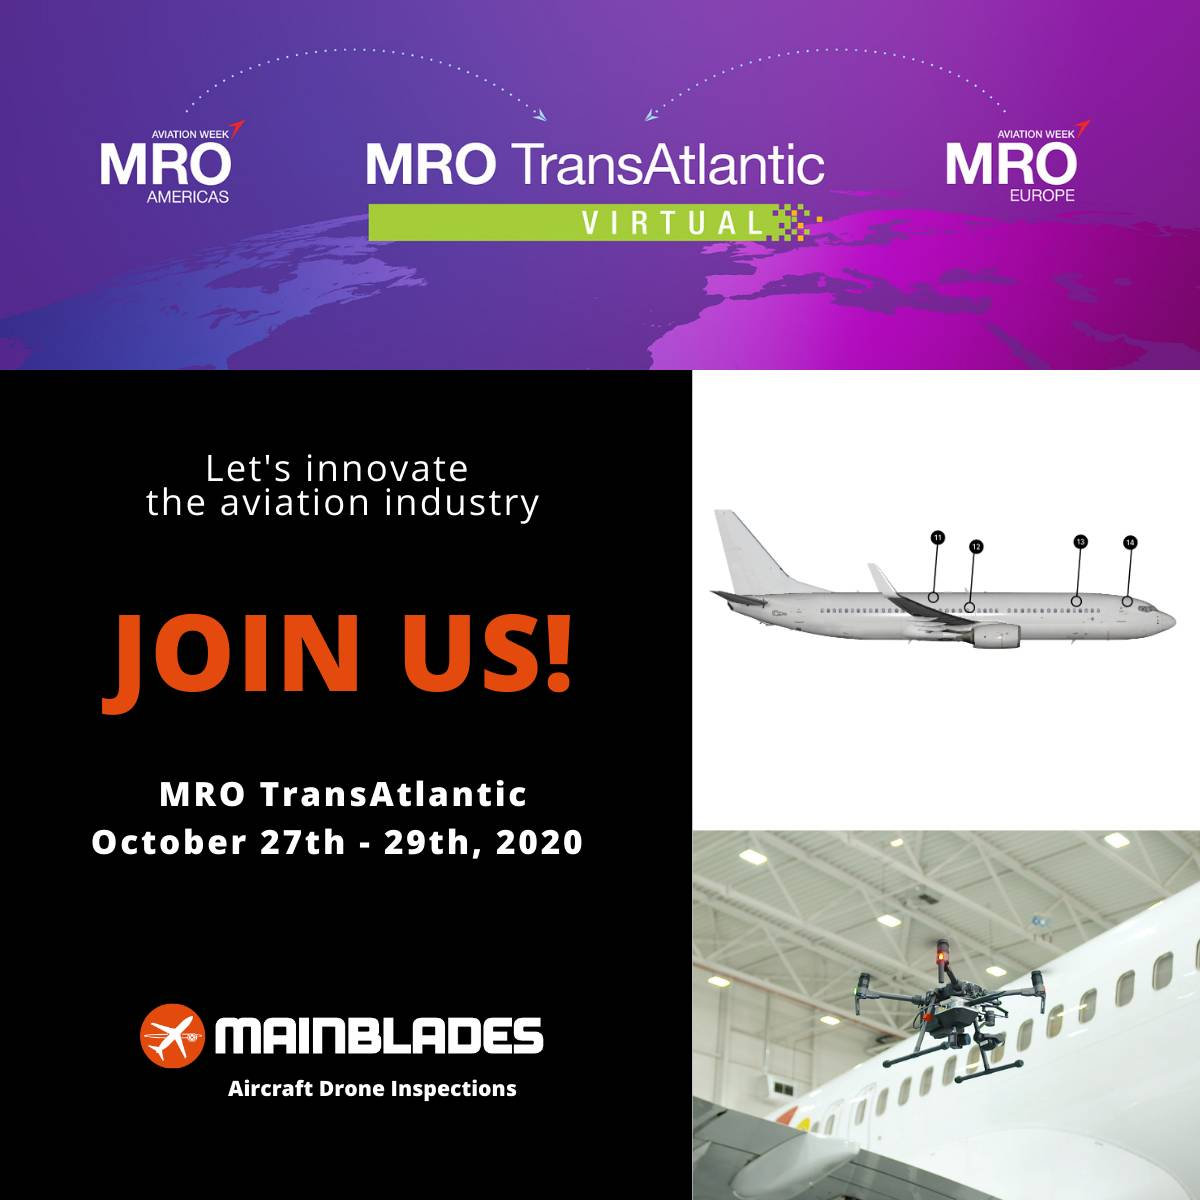 Invitation to MRO Transatlantic event